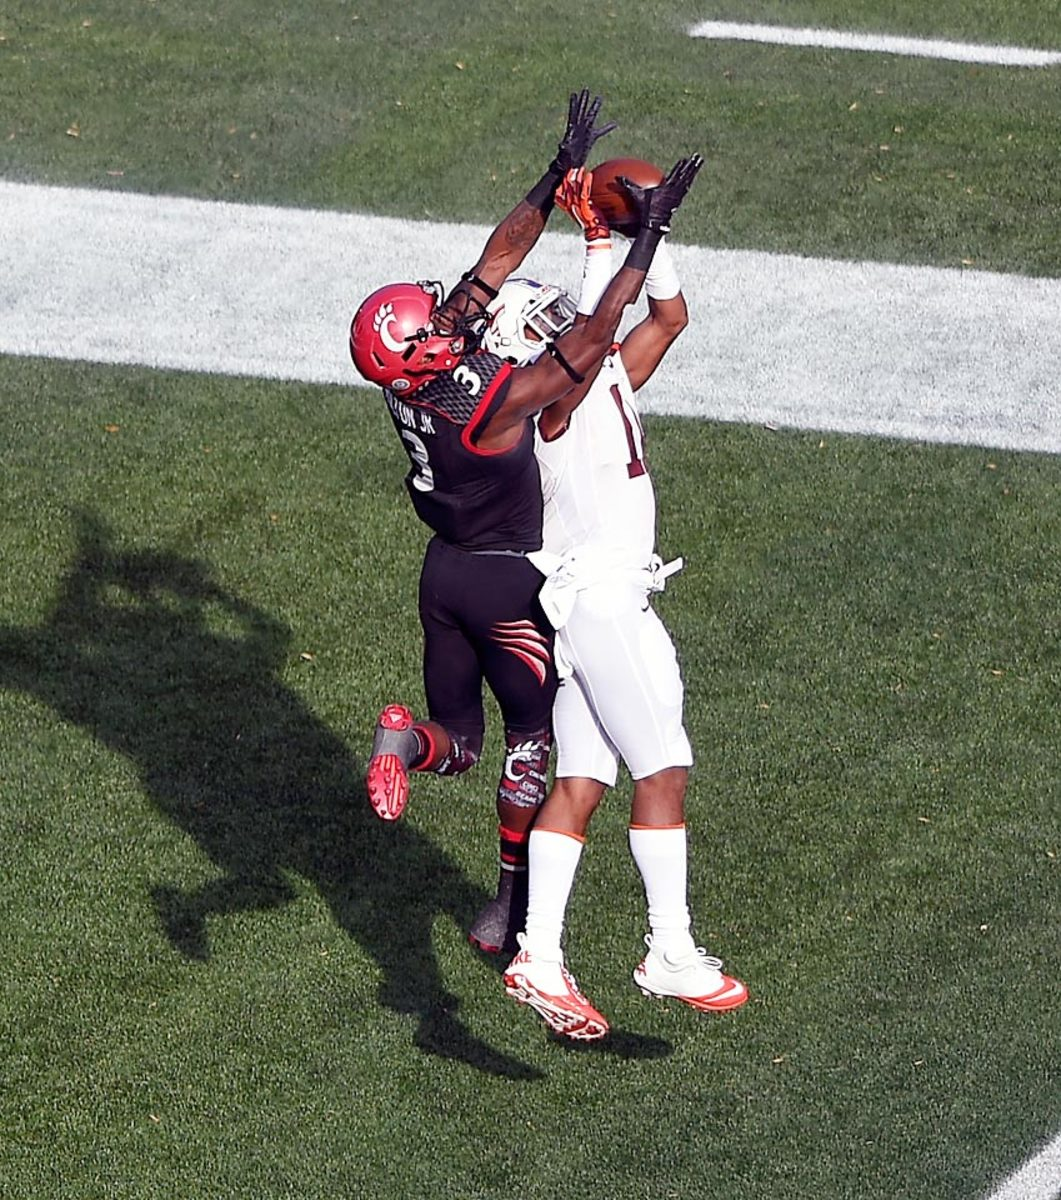 kendall-fuller-acc-players-to-watch-spring-2015_0.jpg